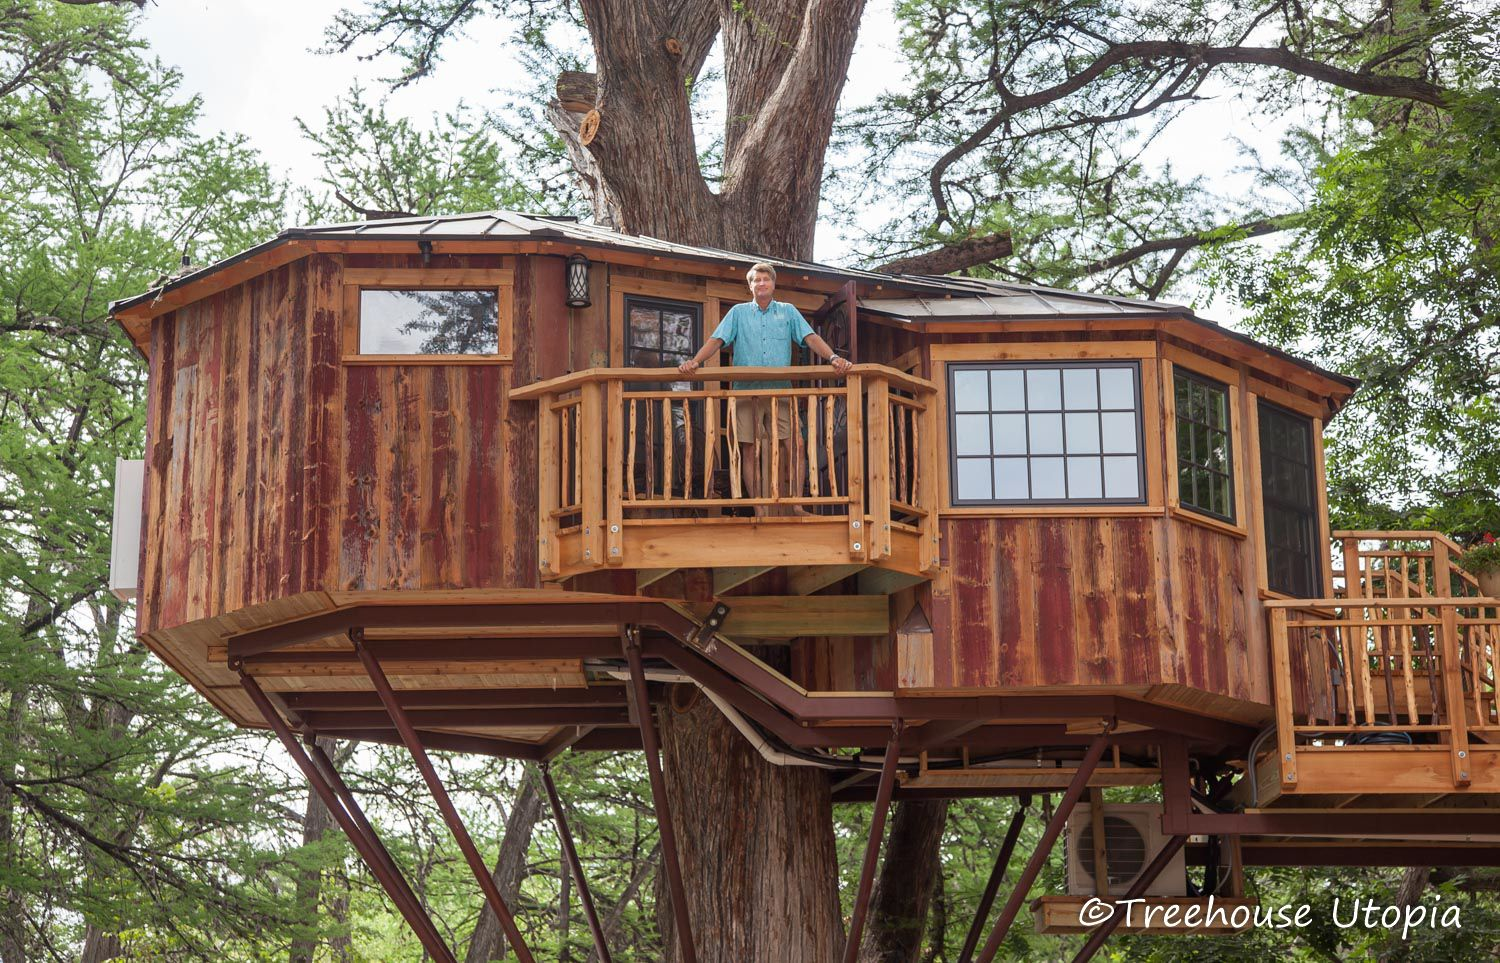 PeteNelsonTreehouseUtopia20185 Tree house, Building a